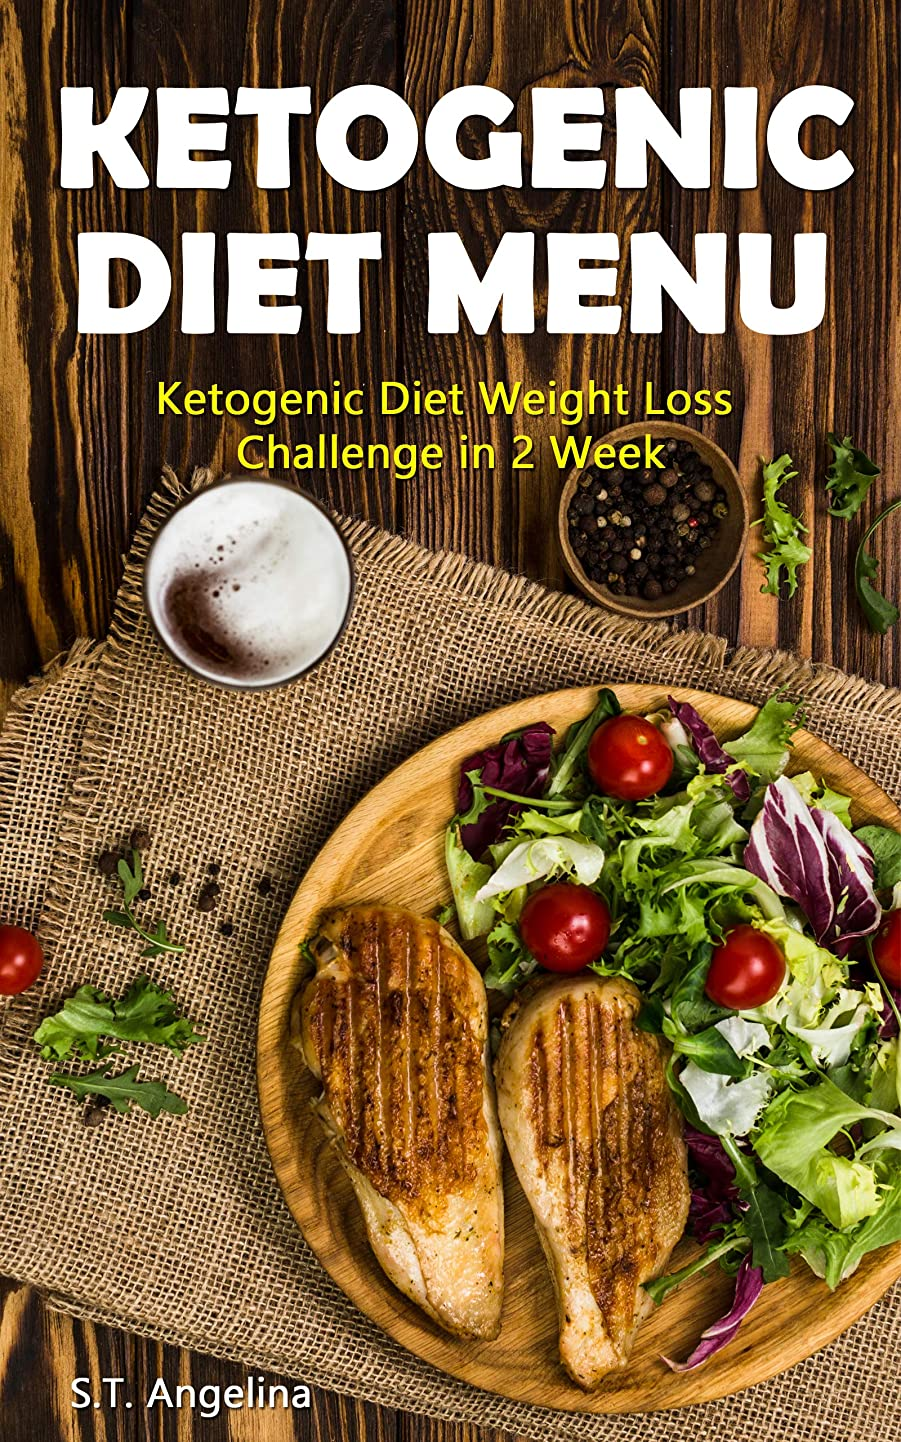 Ketogenic Diet Menu: Ketogenic Diet Weight Loss Challenge in 2 Week (English Edition)